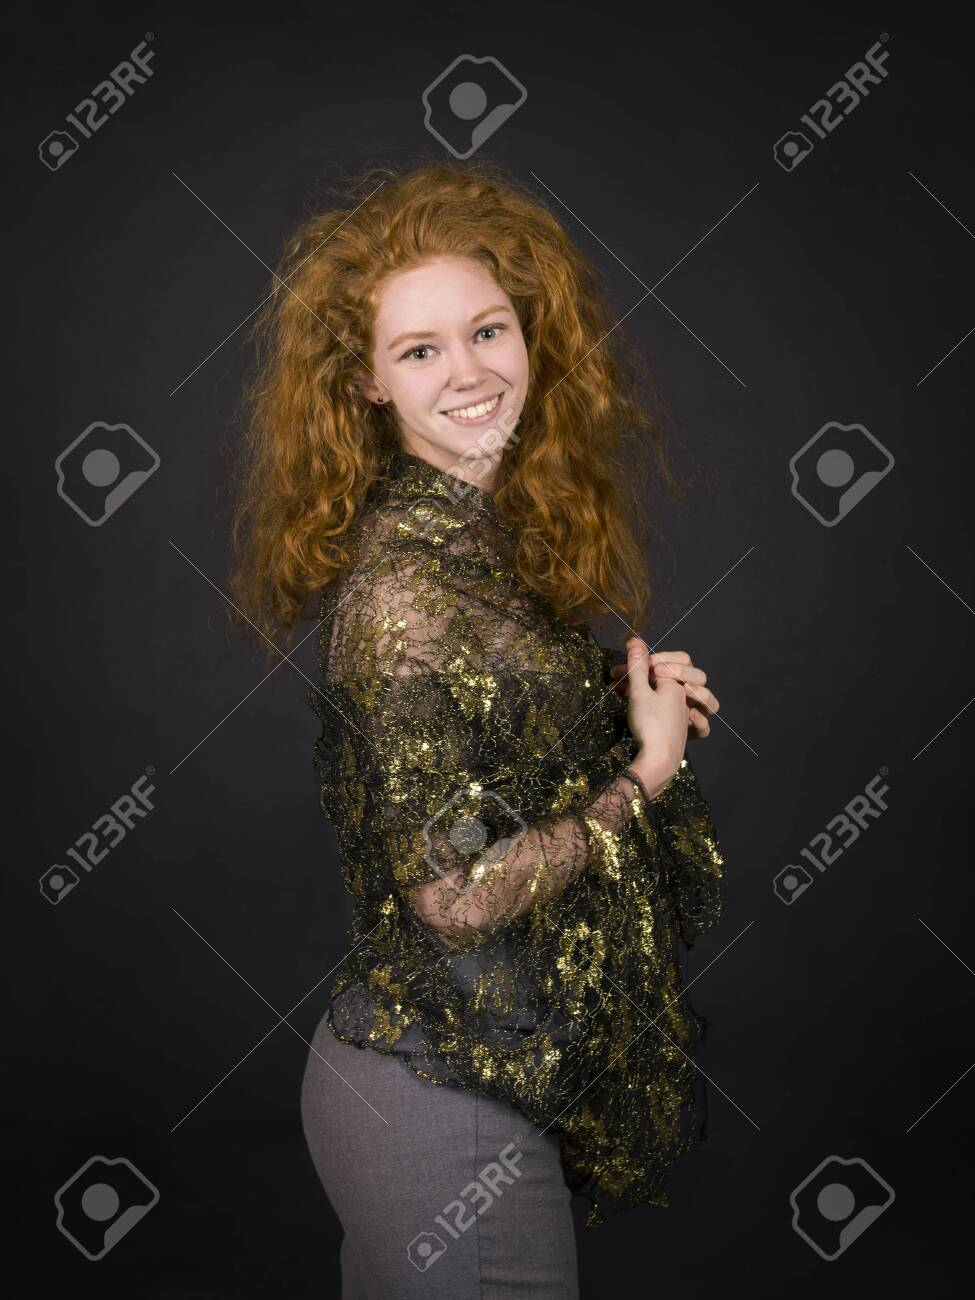 Emotional, red-haired girl in a brocade blouse posing. Studio shooting on a dark background. - 124488667